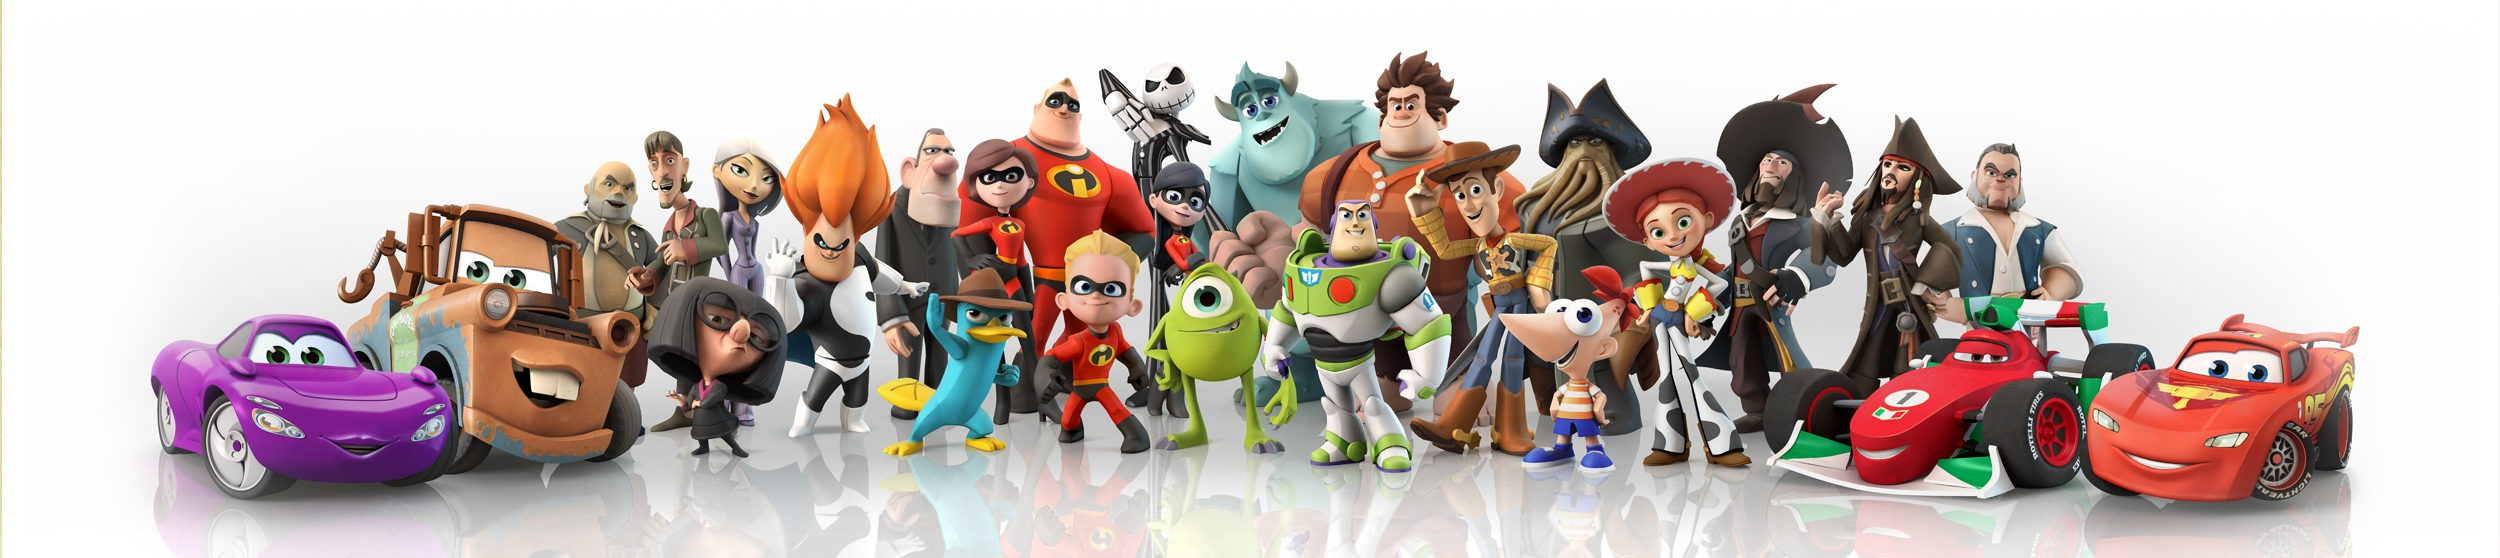 Disney Infinity In Der Toy Box Fliegen Die F 228 Uste